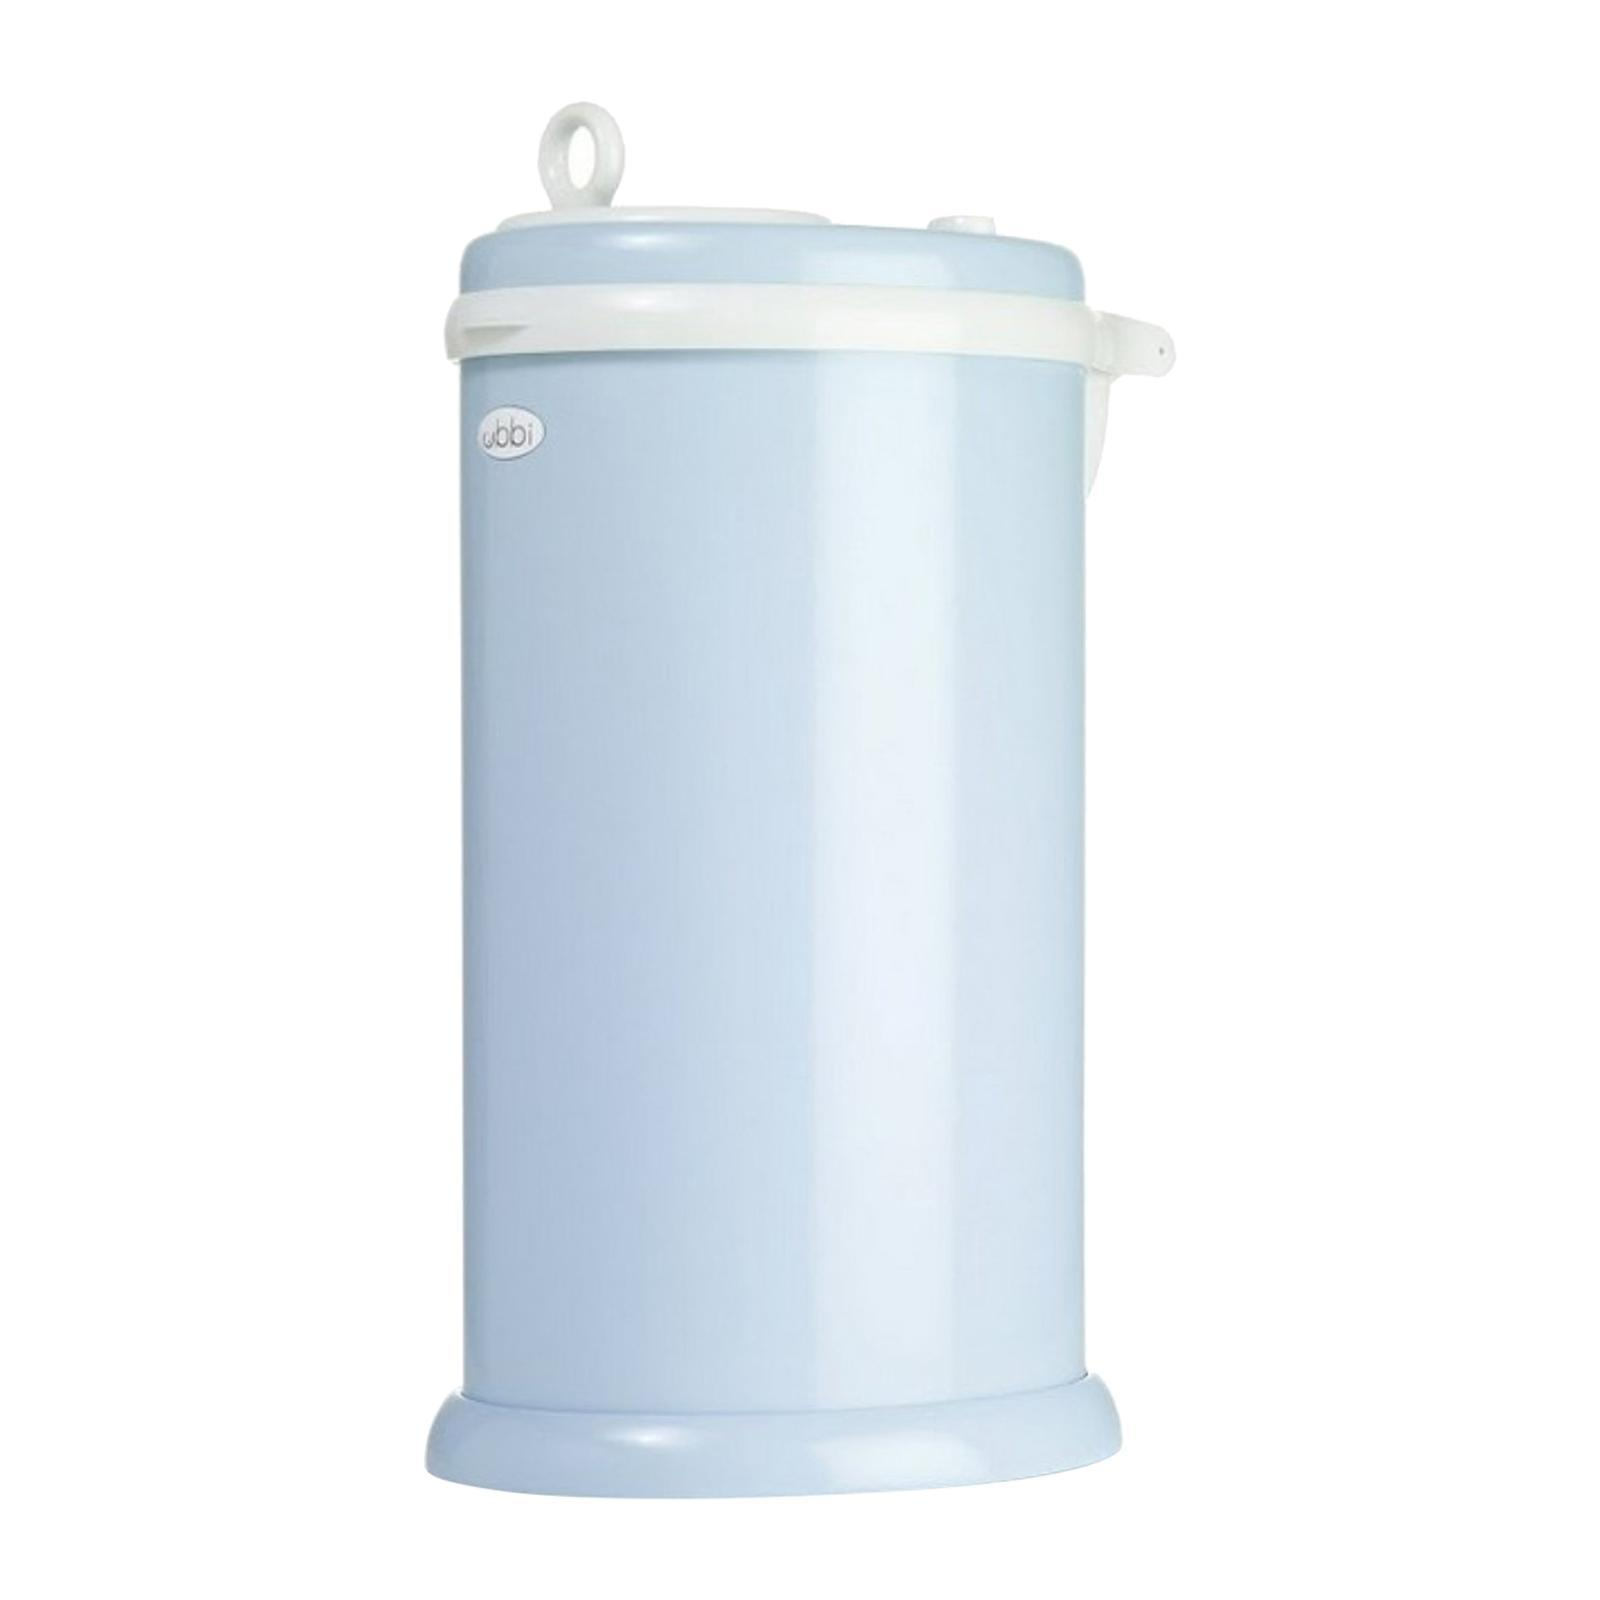 Ubbi Diaper Pail - Light Blue By Redmart.